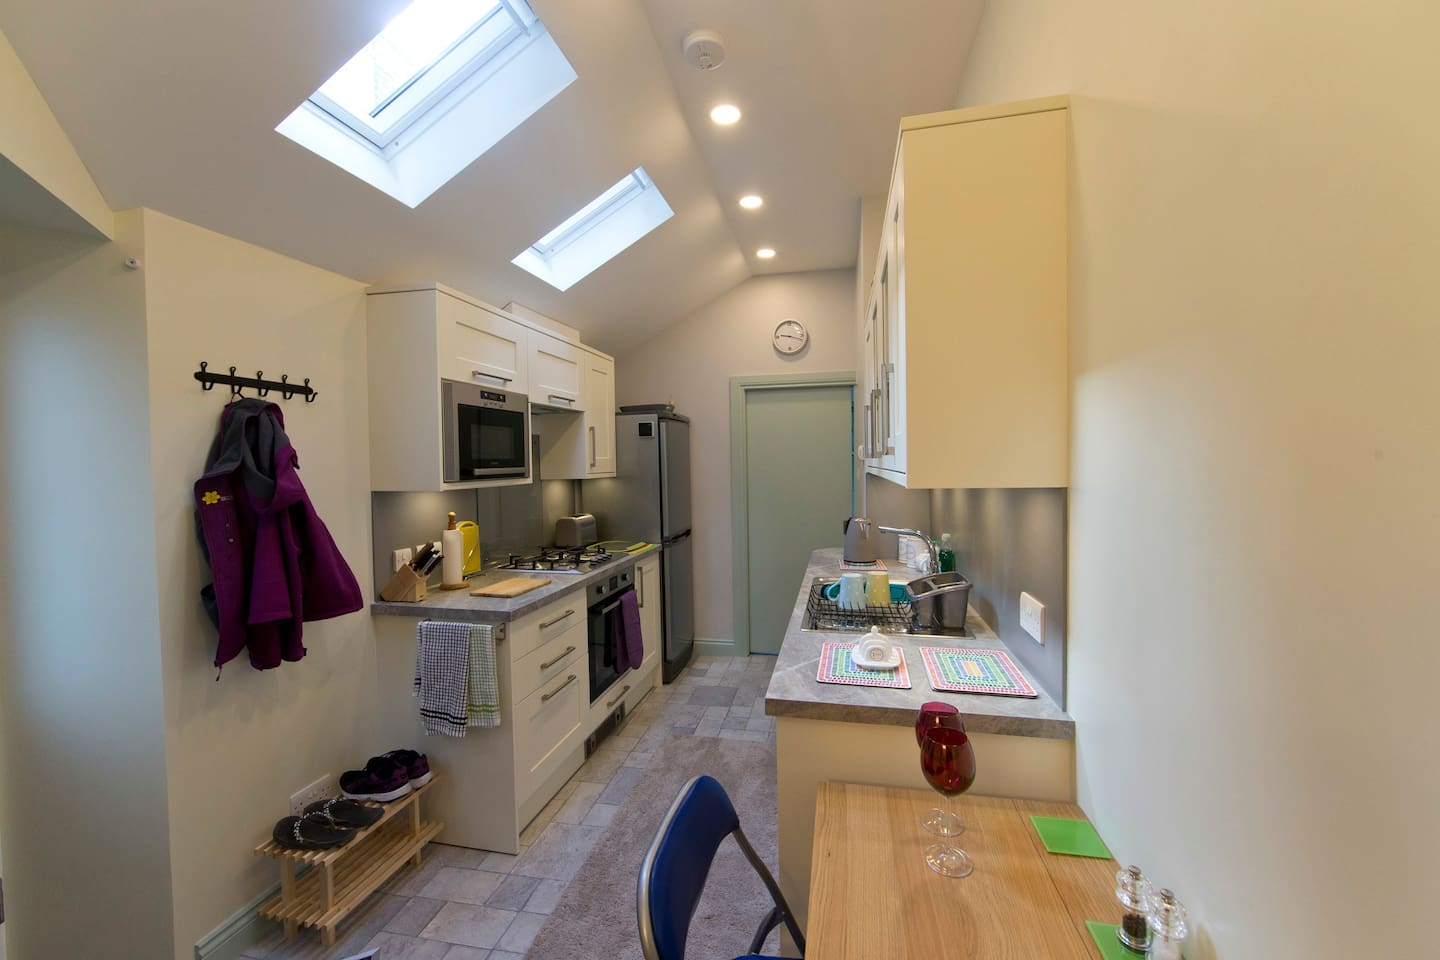 Fully furnished kitchen with dishwasher, fridge and cooker